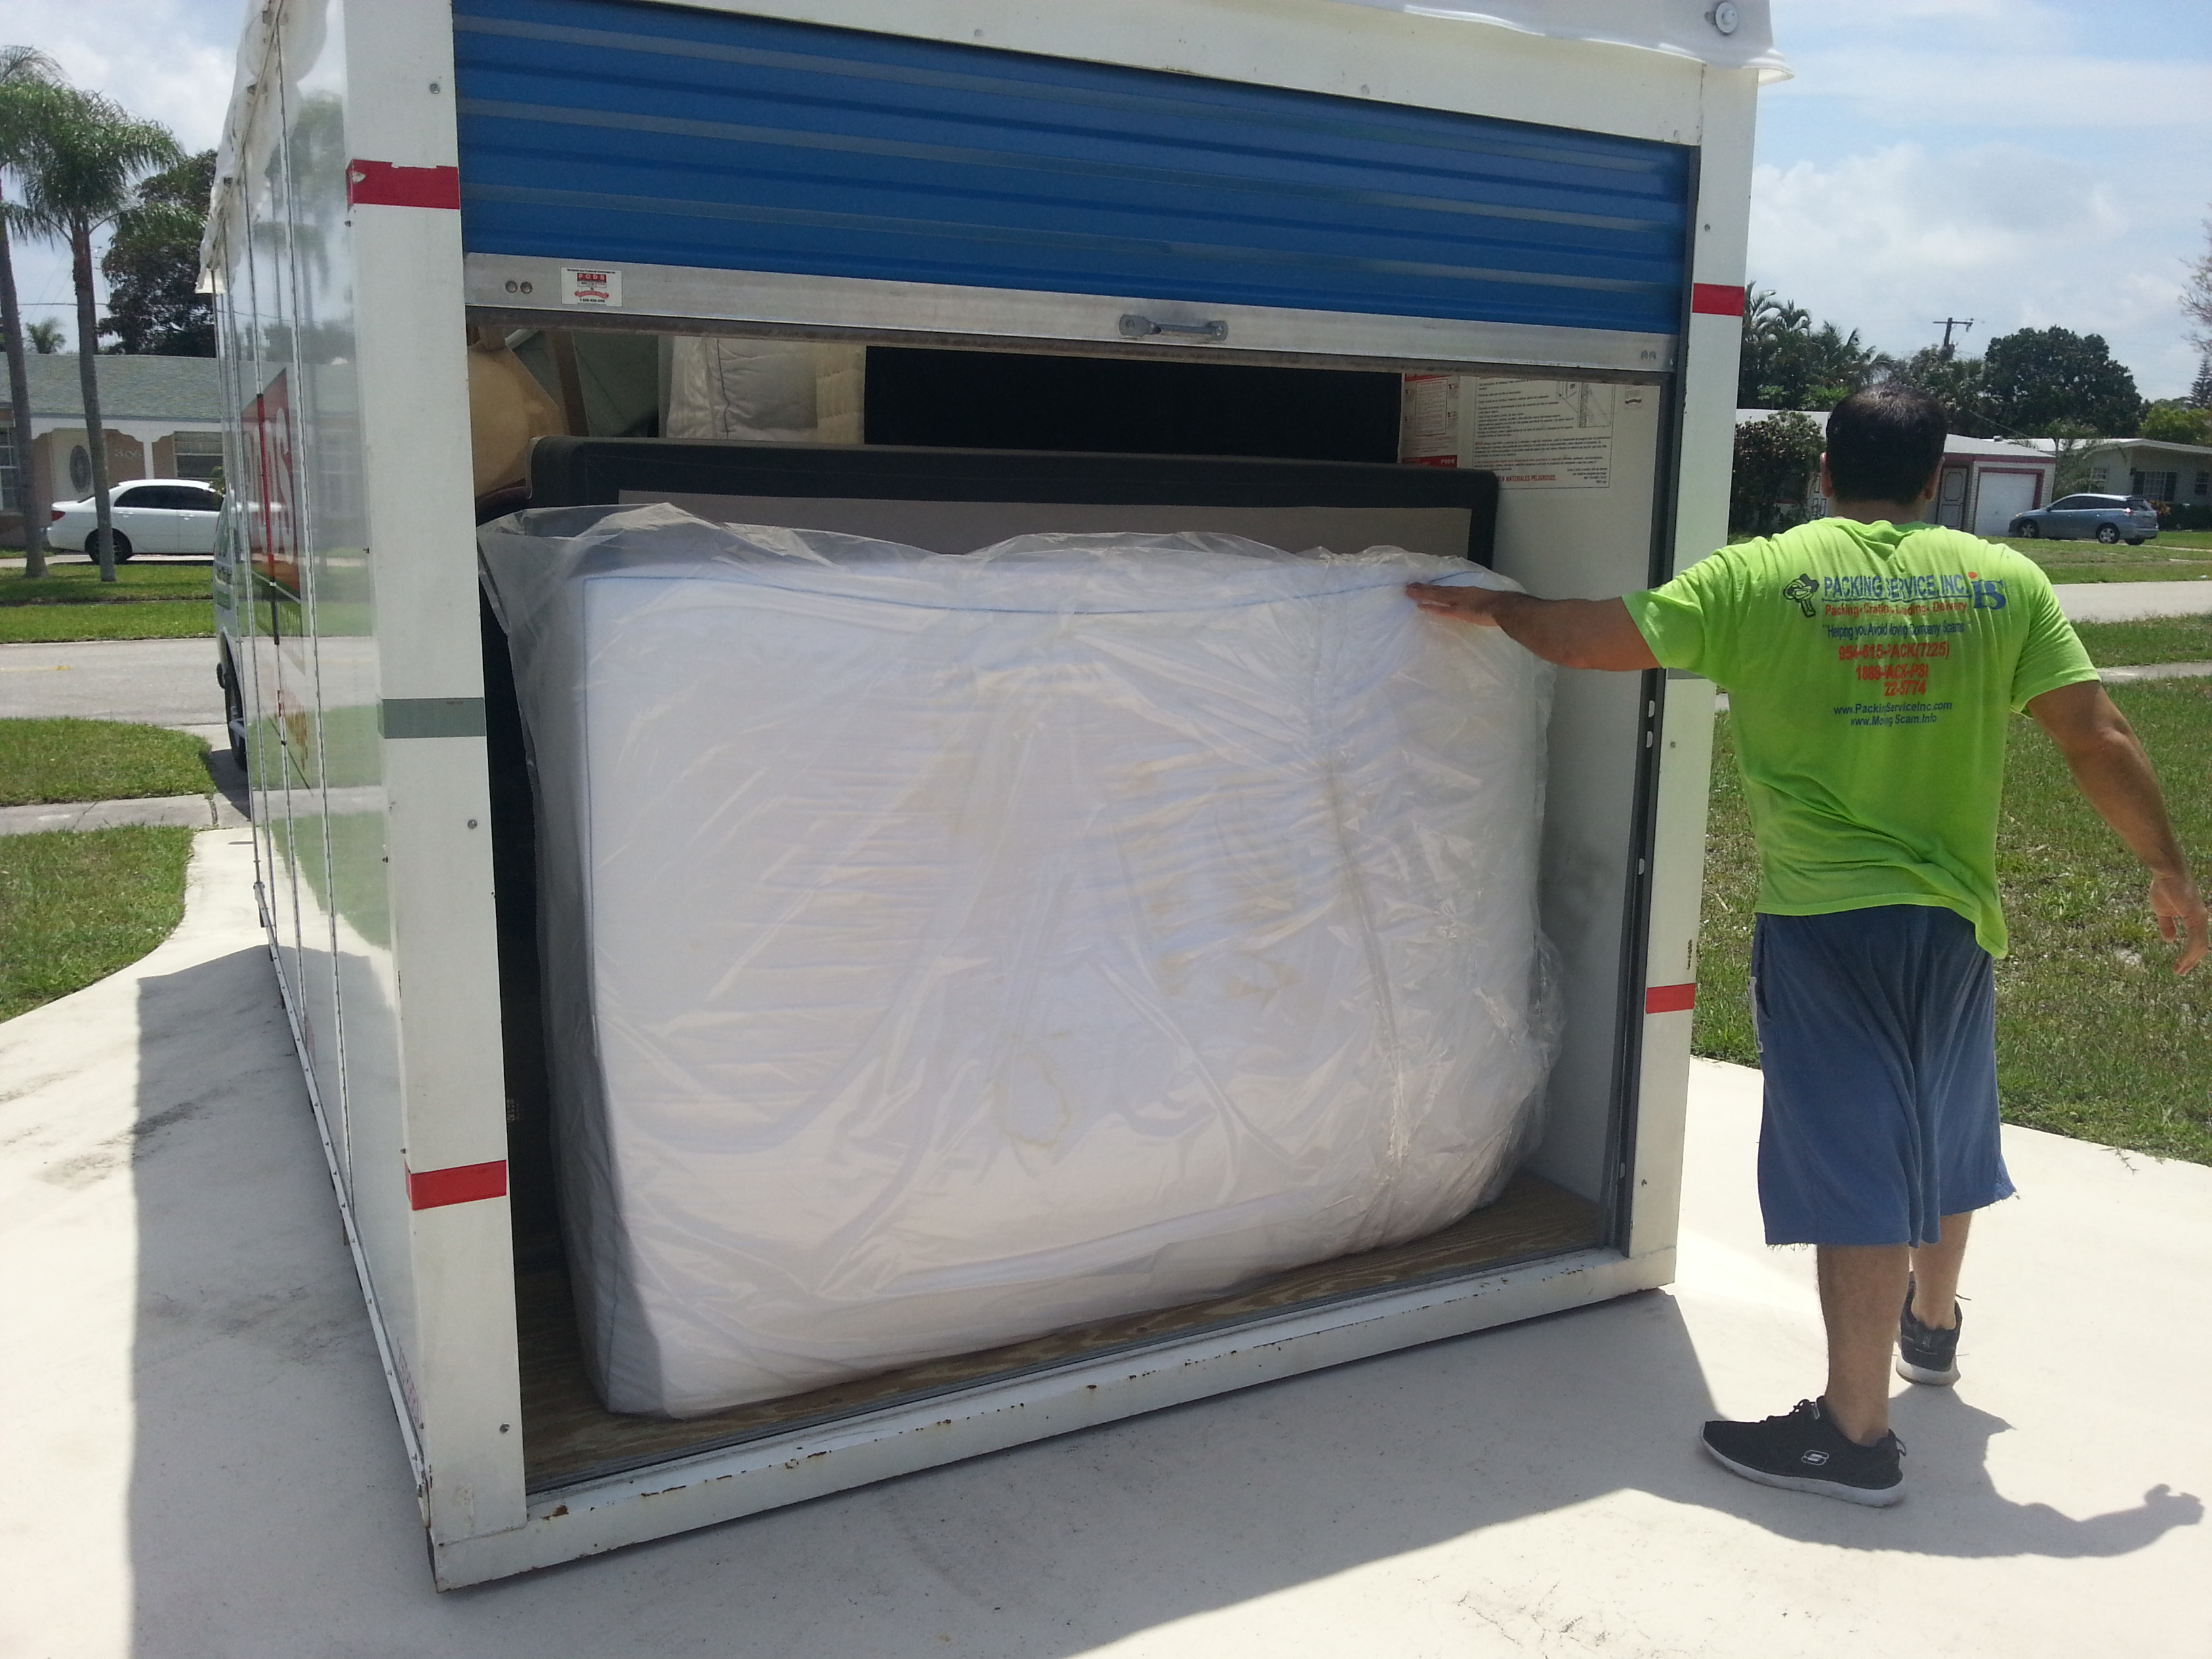 PSI will happily load and unload your PODs Container, International Container, Trailer, and/or Rental Truck as we are a One Stop Shop!